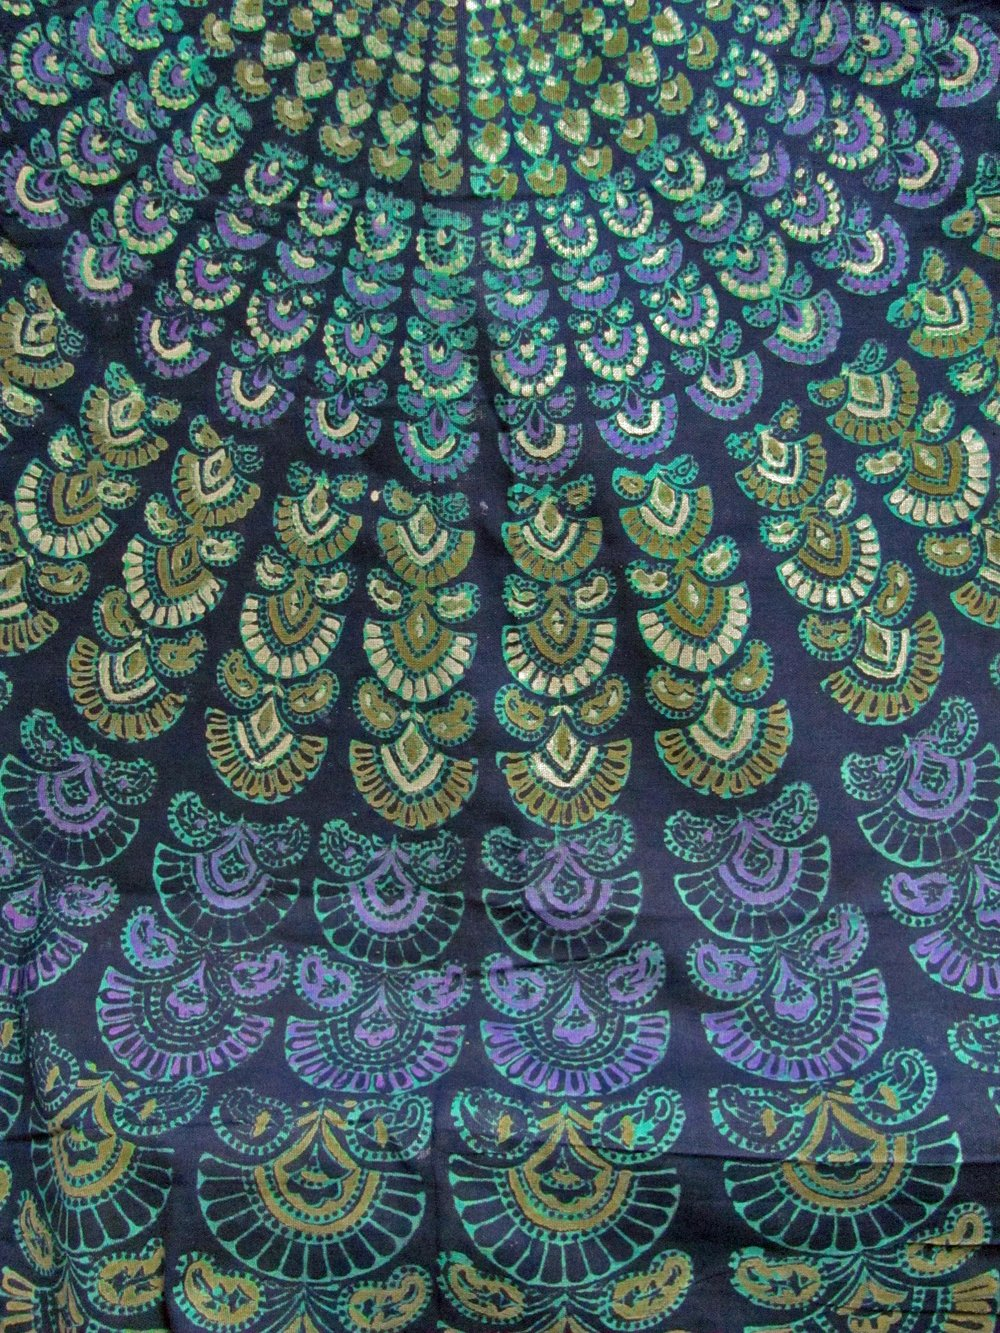 India Navy Blue Handloomed Cotton Mandala Peacock Bedspread Blanket Throw Tapestry 110''x 110'' (King Size) by Rajasthan Cottage (Image #5)